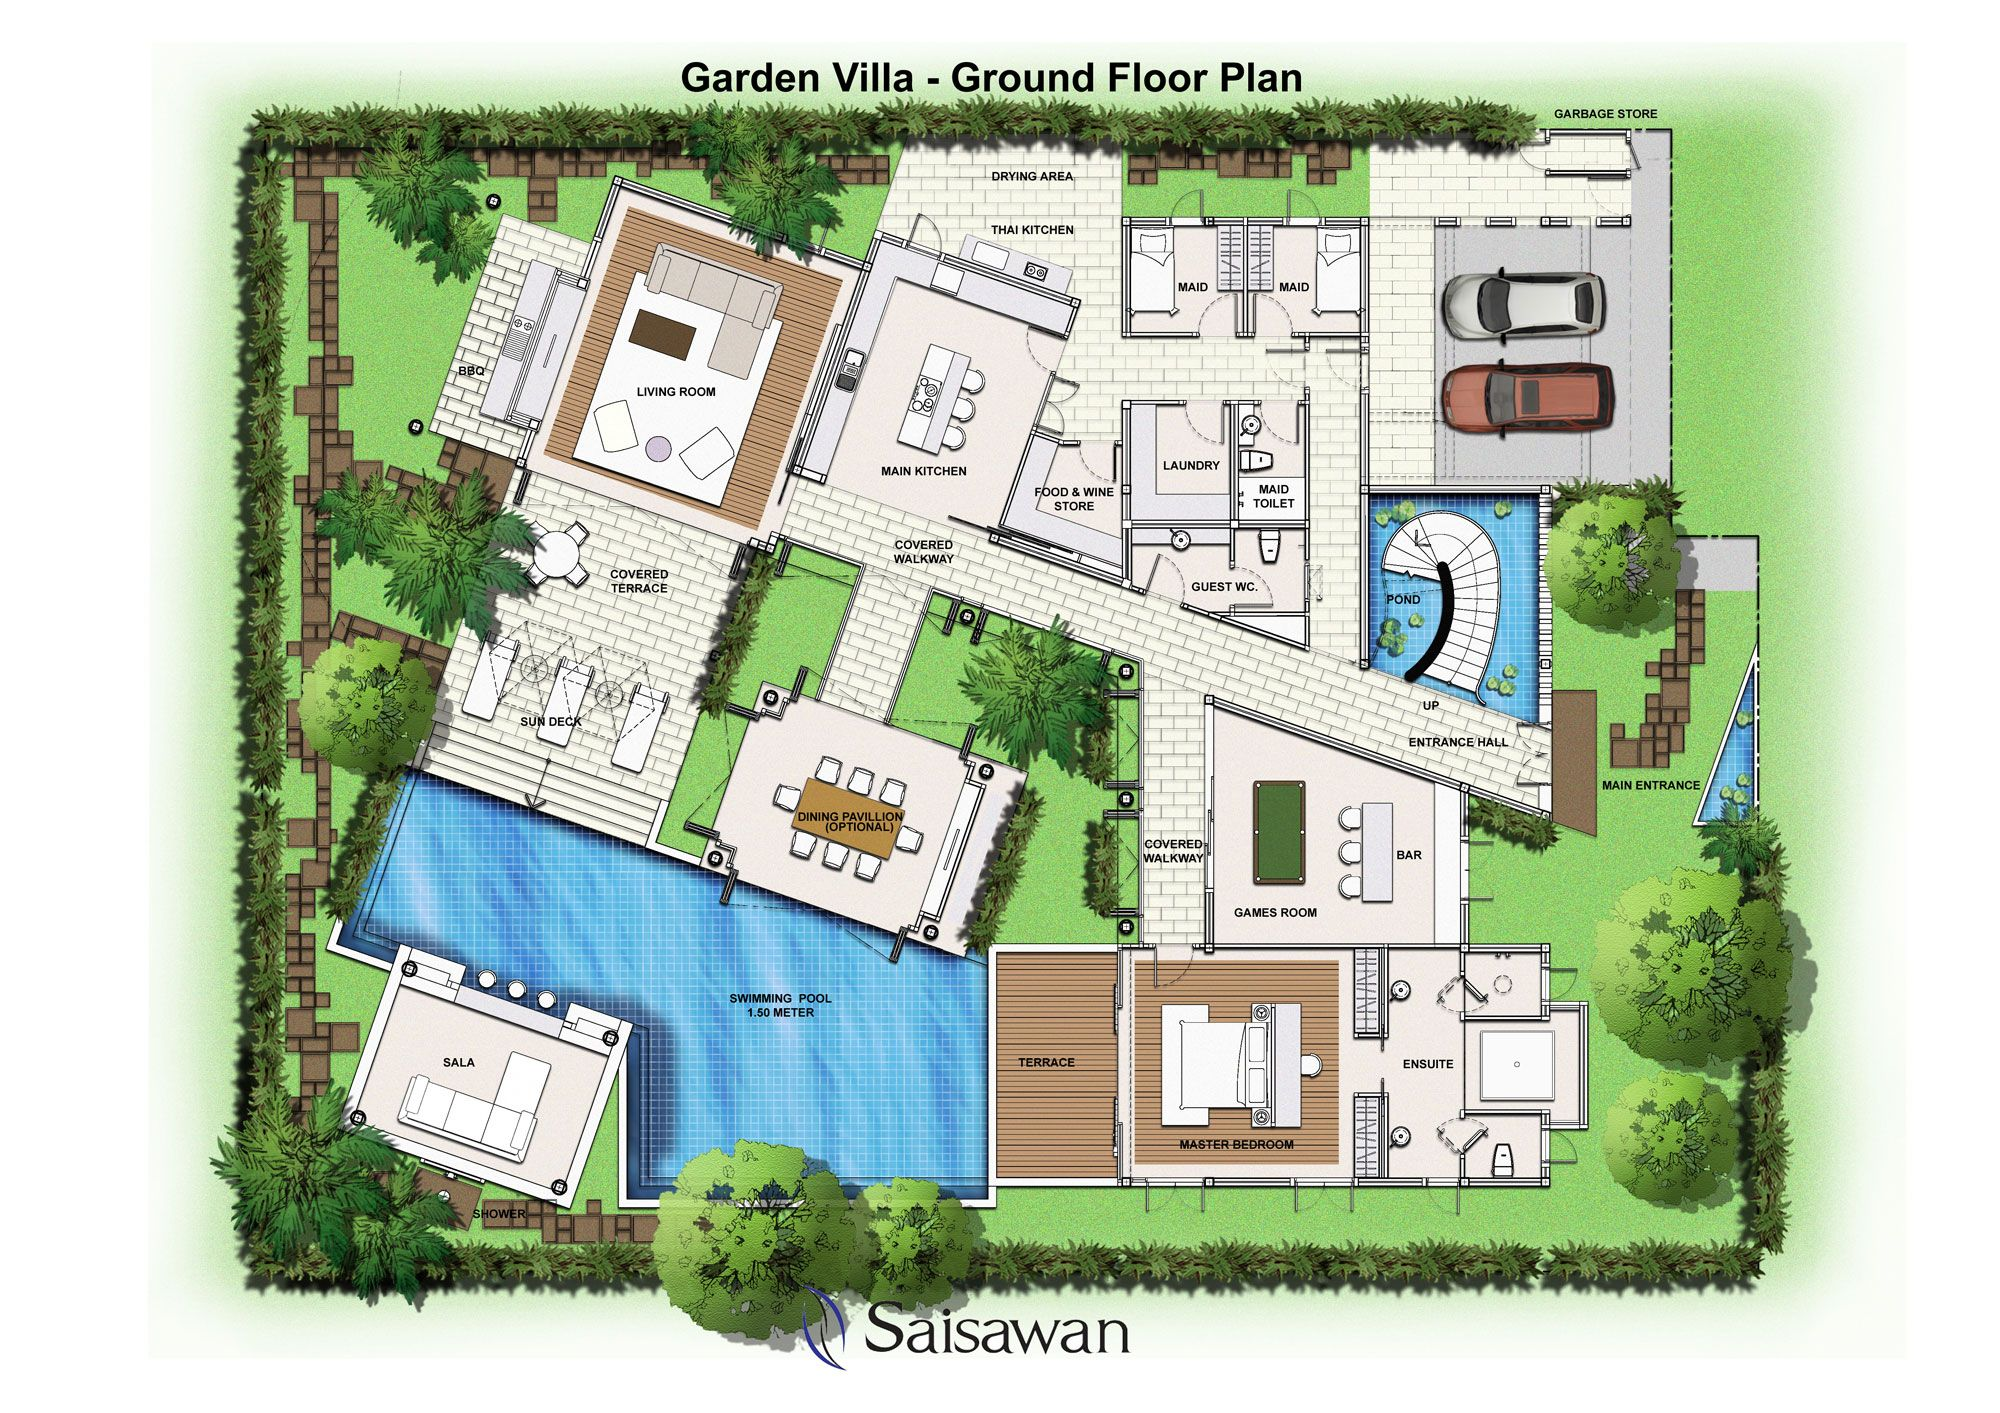 Saisawan garden villas ground floor plan house plans for Garden home design plans